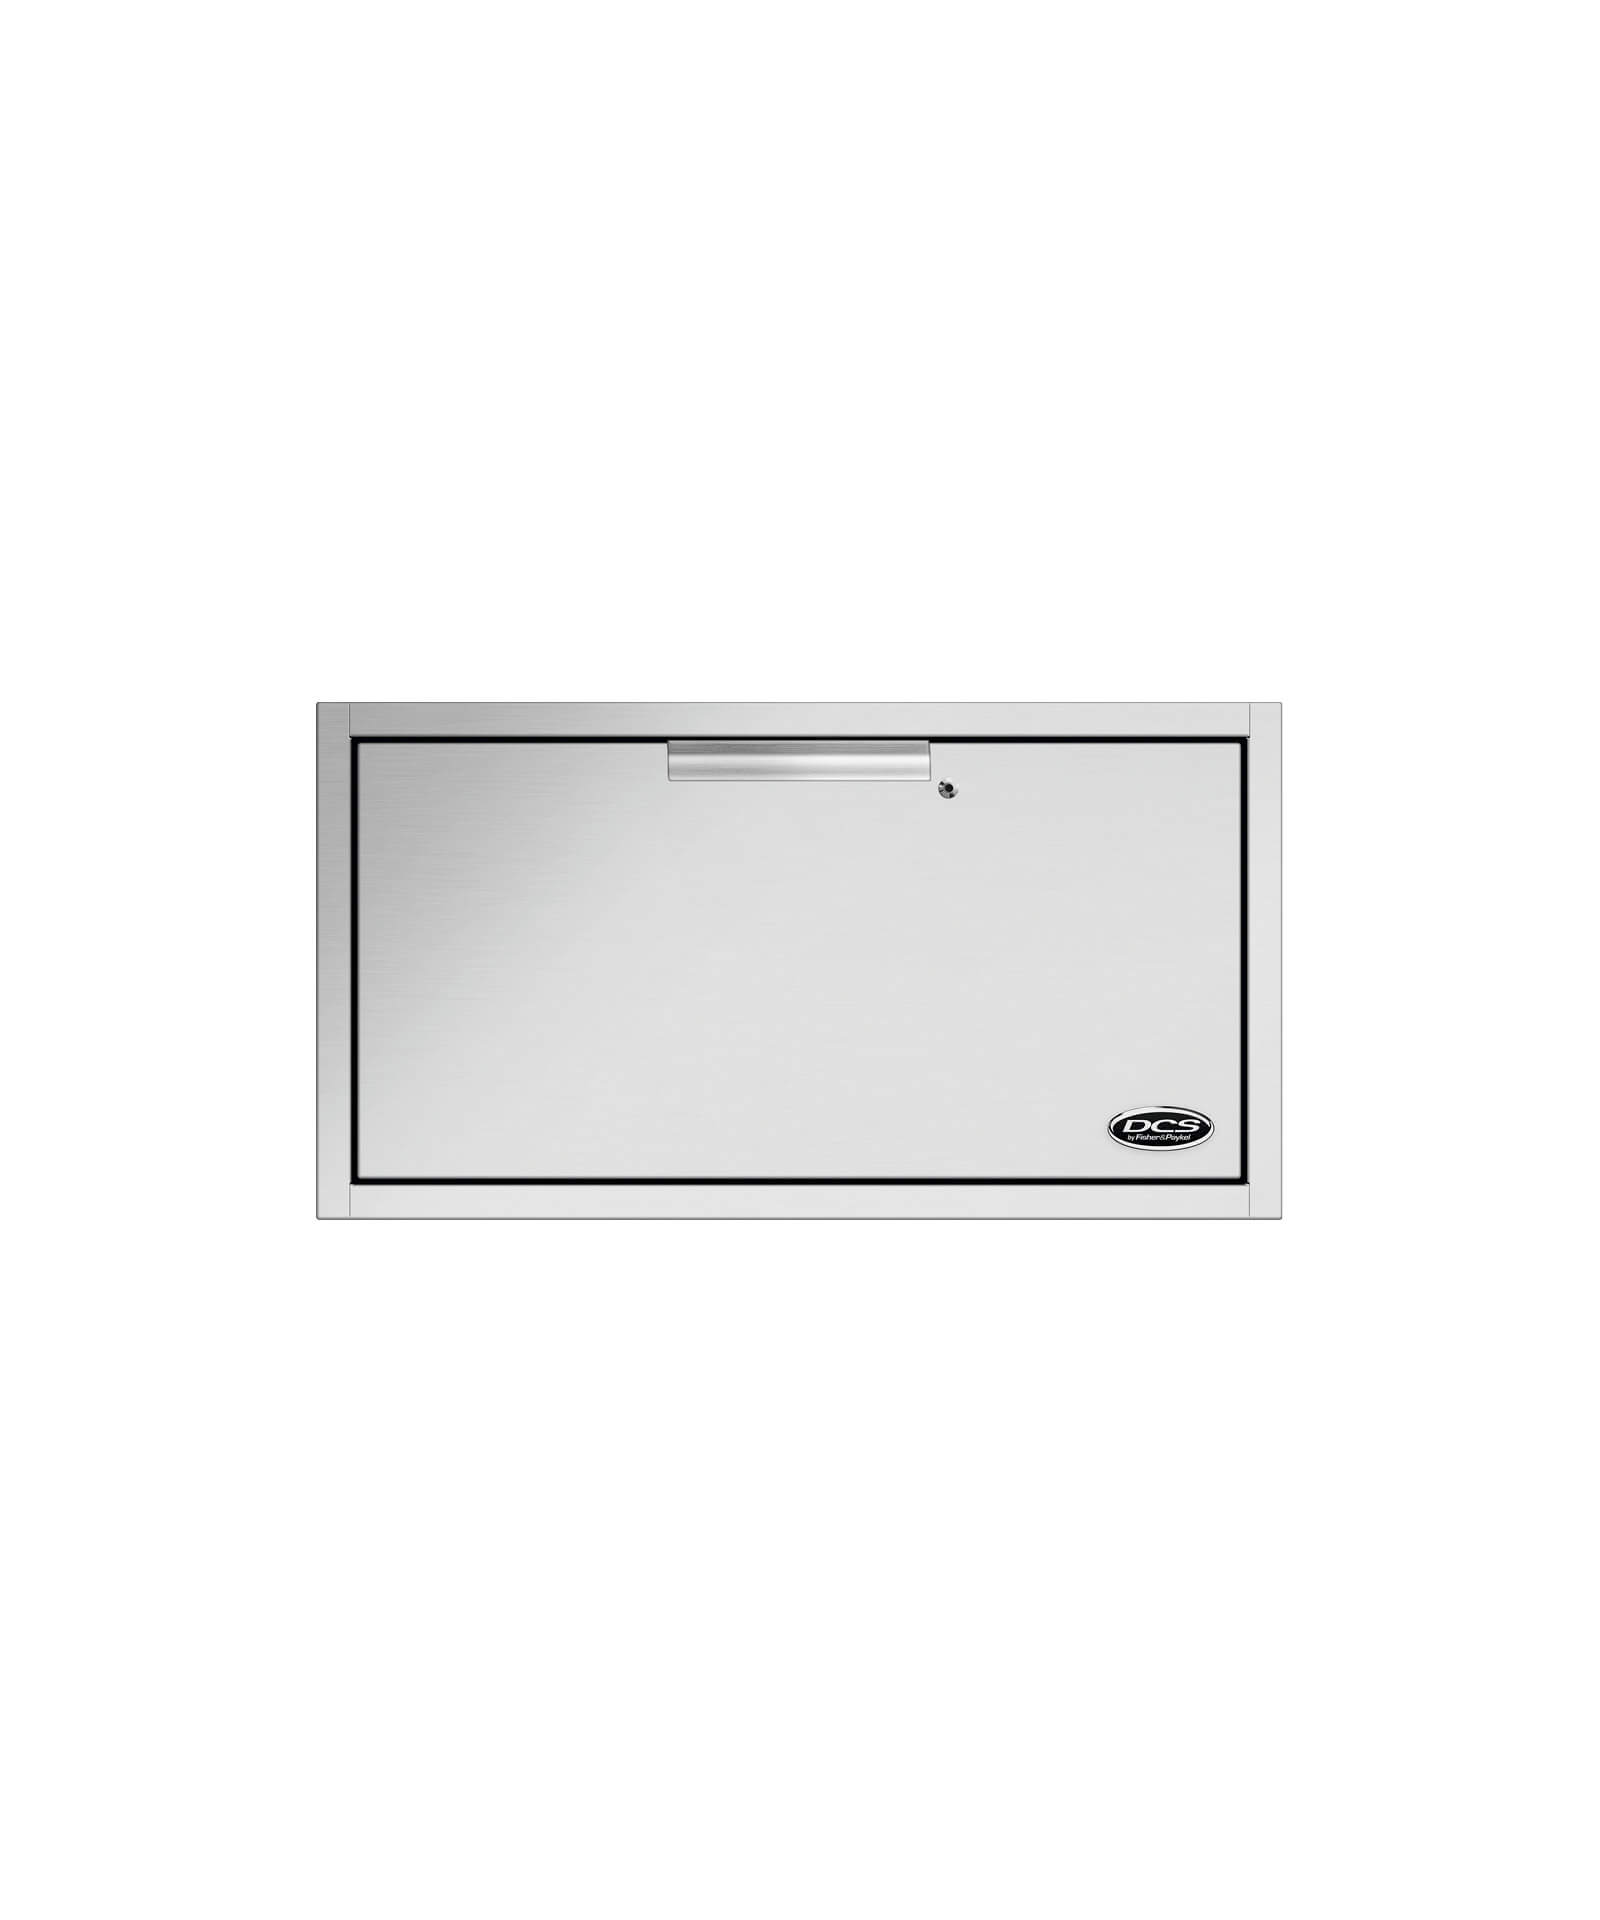 DCS Outdoor Warming Drawer